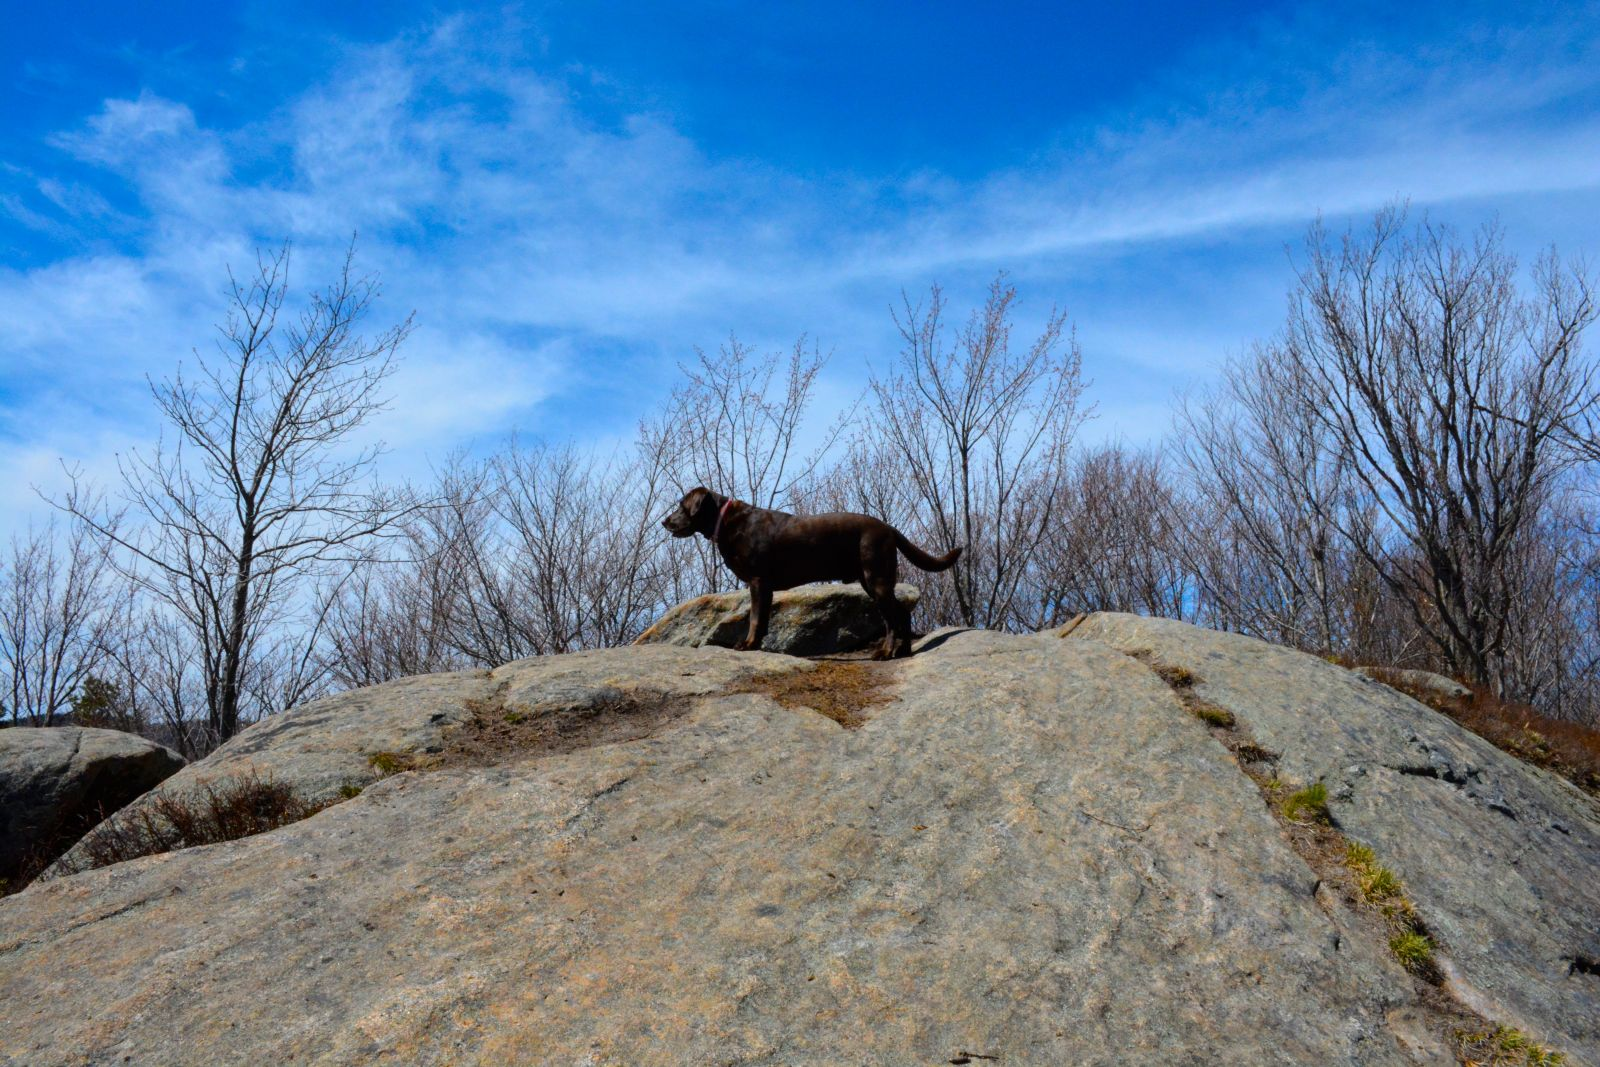 The summit is a fun place to explore for dogs of all sizes.